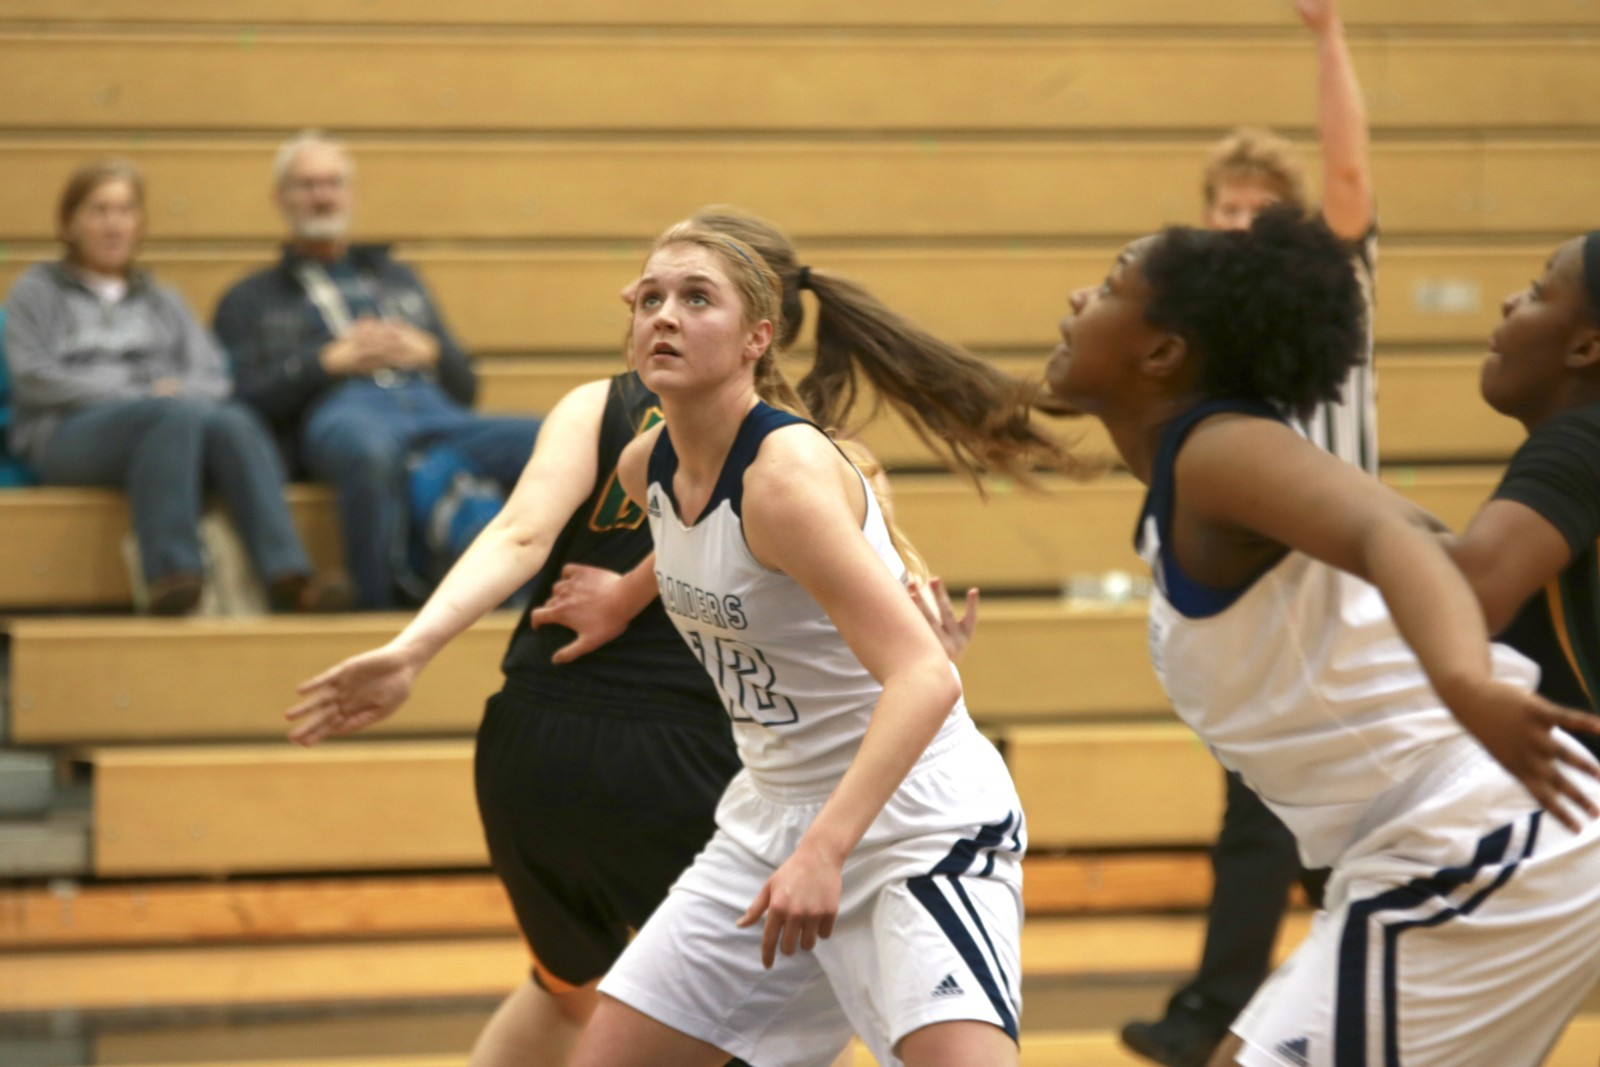 Freshman Center, #12, Makayla Beld (left) and Freshman Forward, #44, Kari Wilson being out glen Oaks for the rebound.